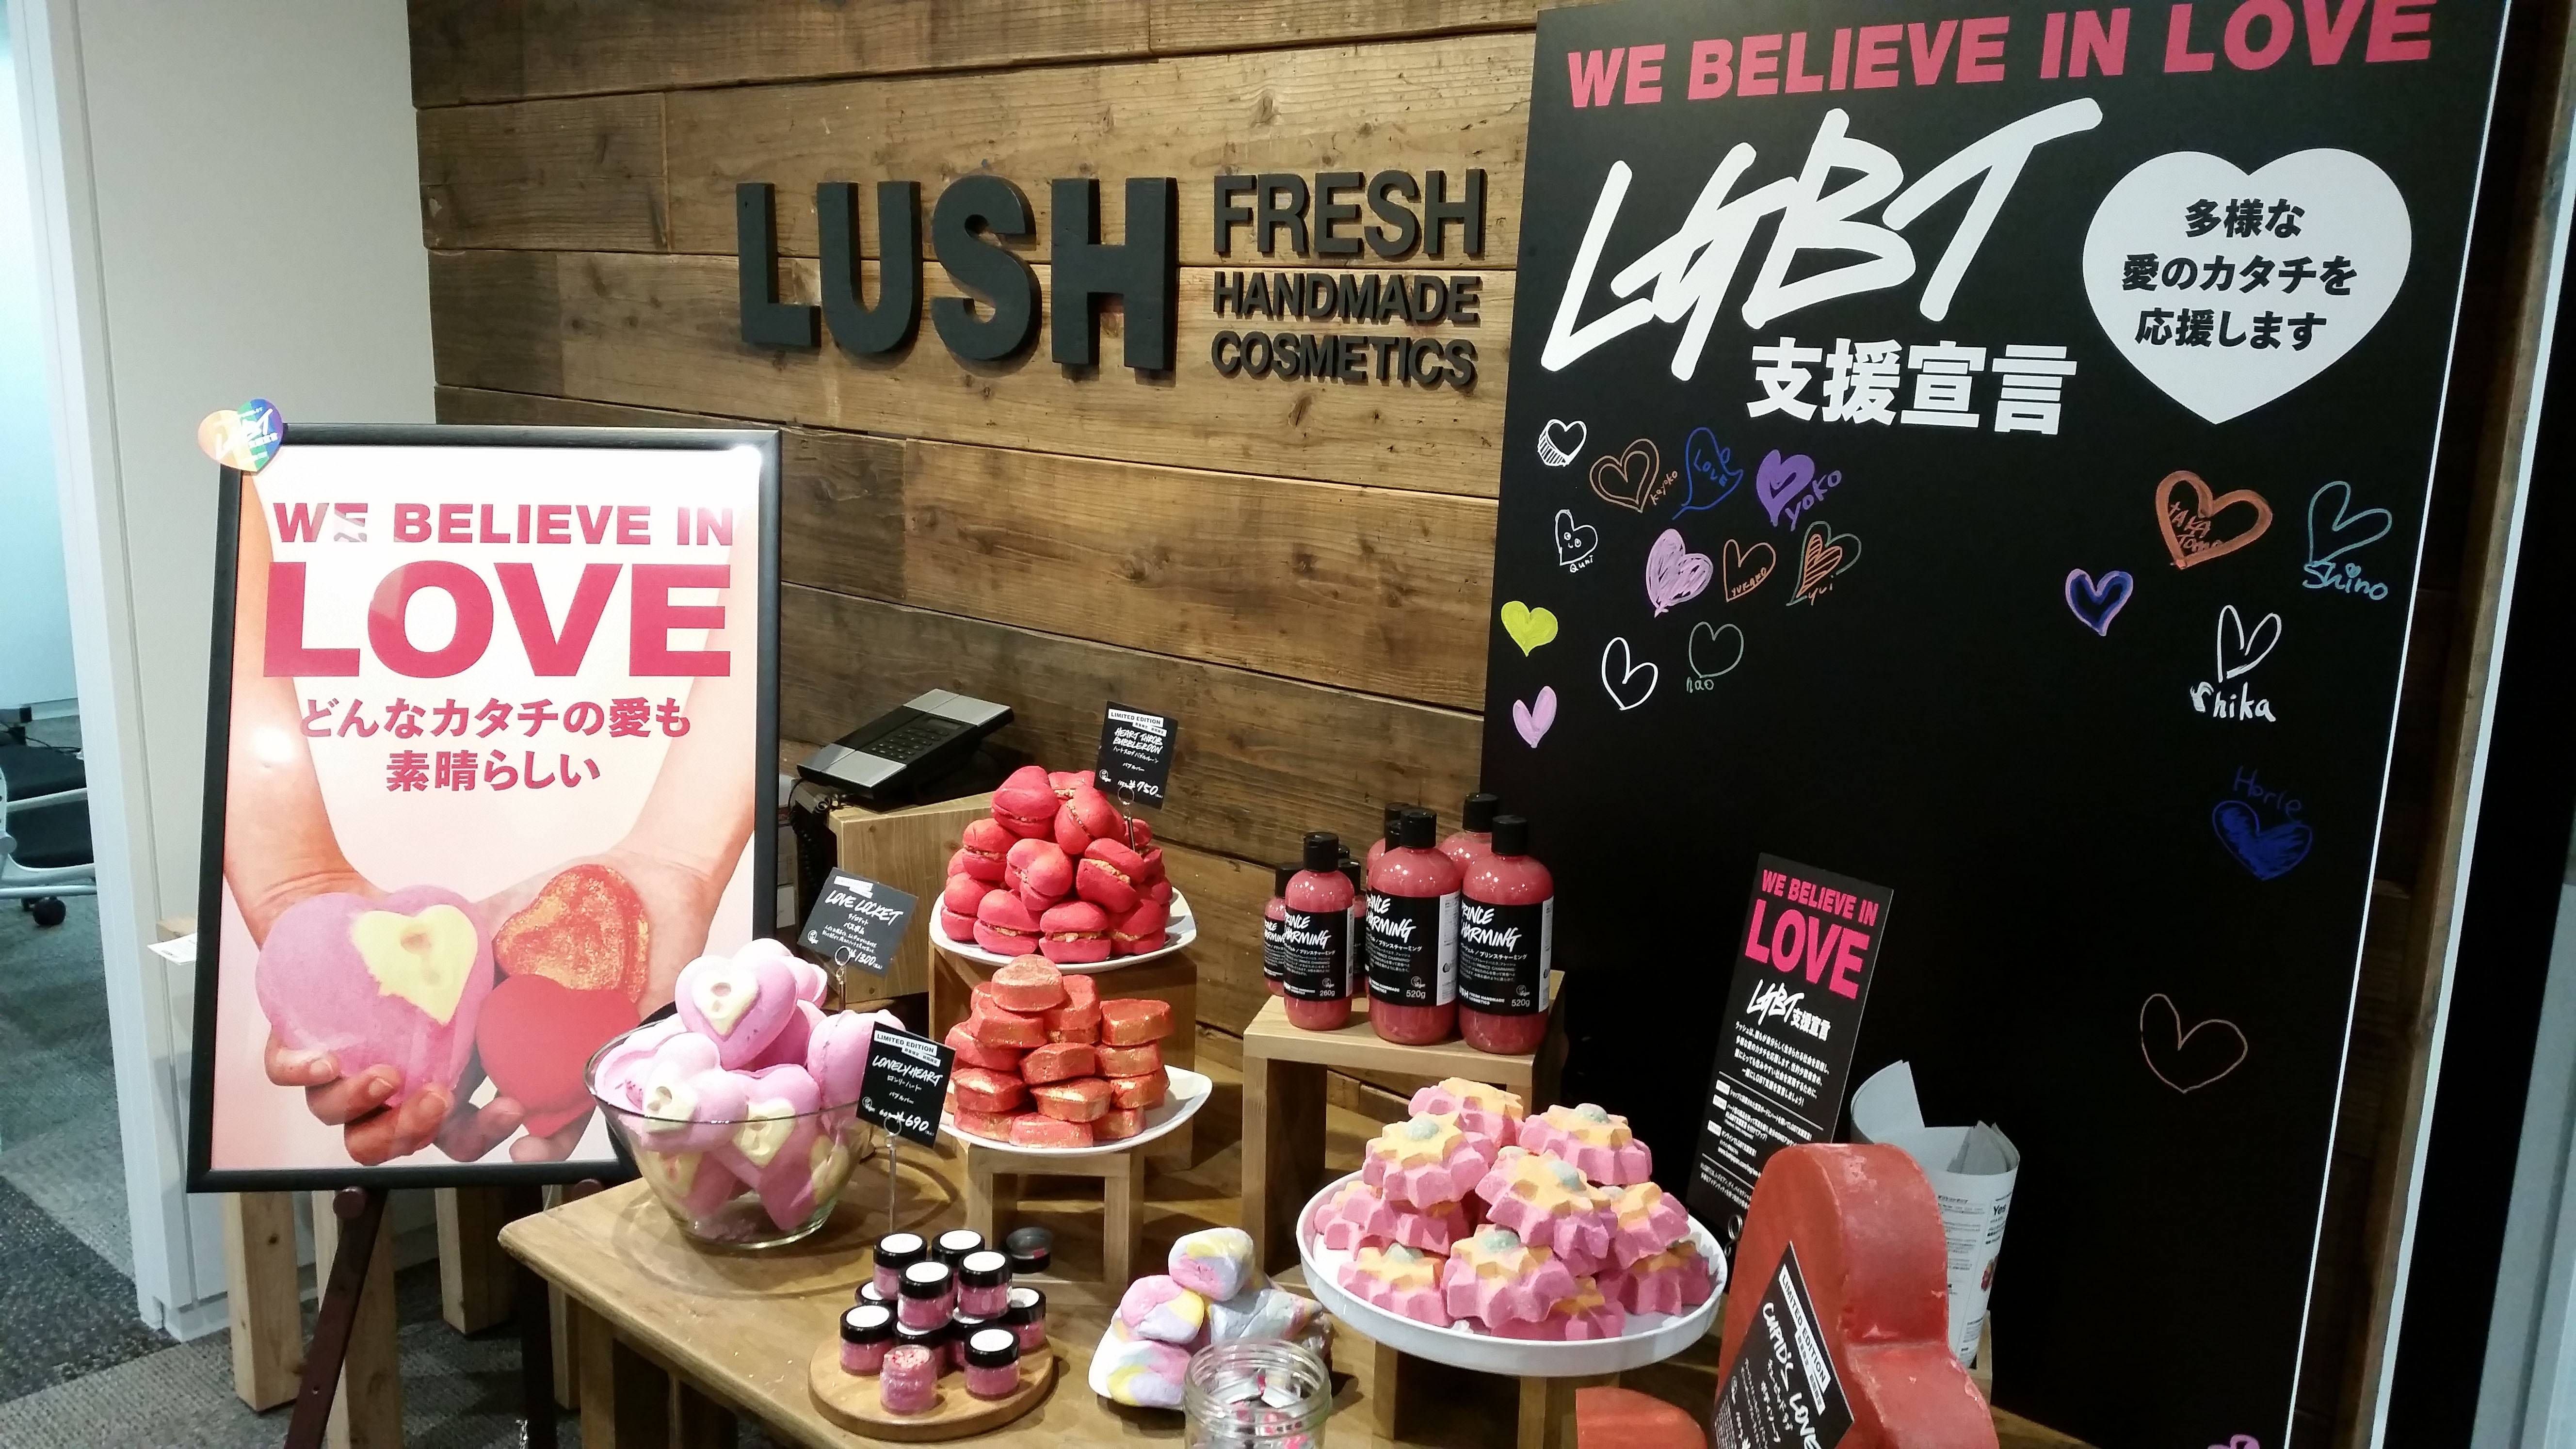 The love show: Lush Japan circulated a petition in Tokyo's Toshima Ward to make same-sex marriage legal. Shibuya Ward's move to grant same-sex couples certain rights has spurred discussion of the issue in the national media.   TOMOHIRO OSAKI